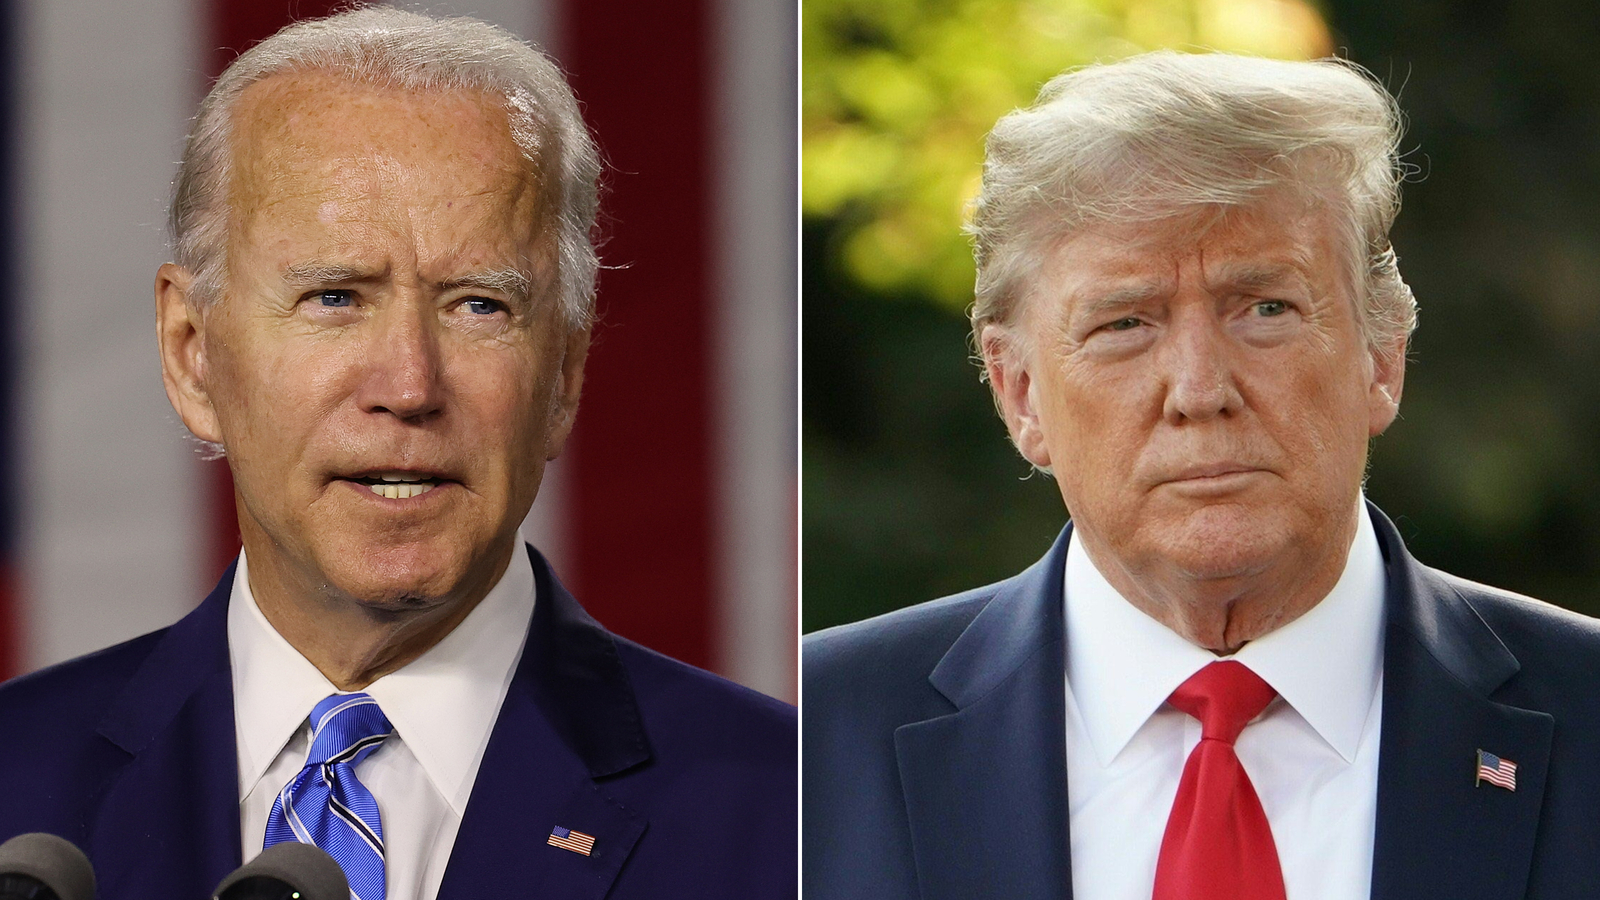 Biden and Trump hold dueling Florida rallies as election and pandemic converge